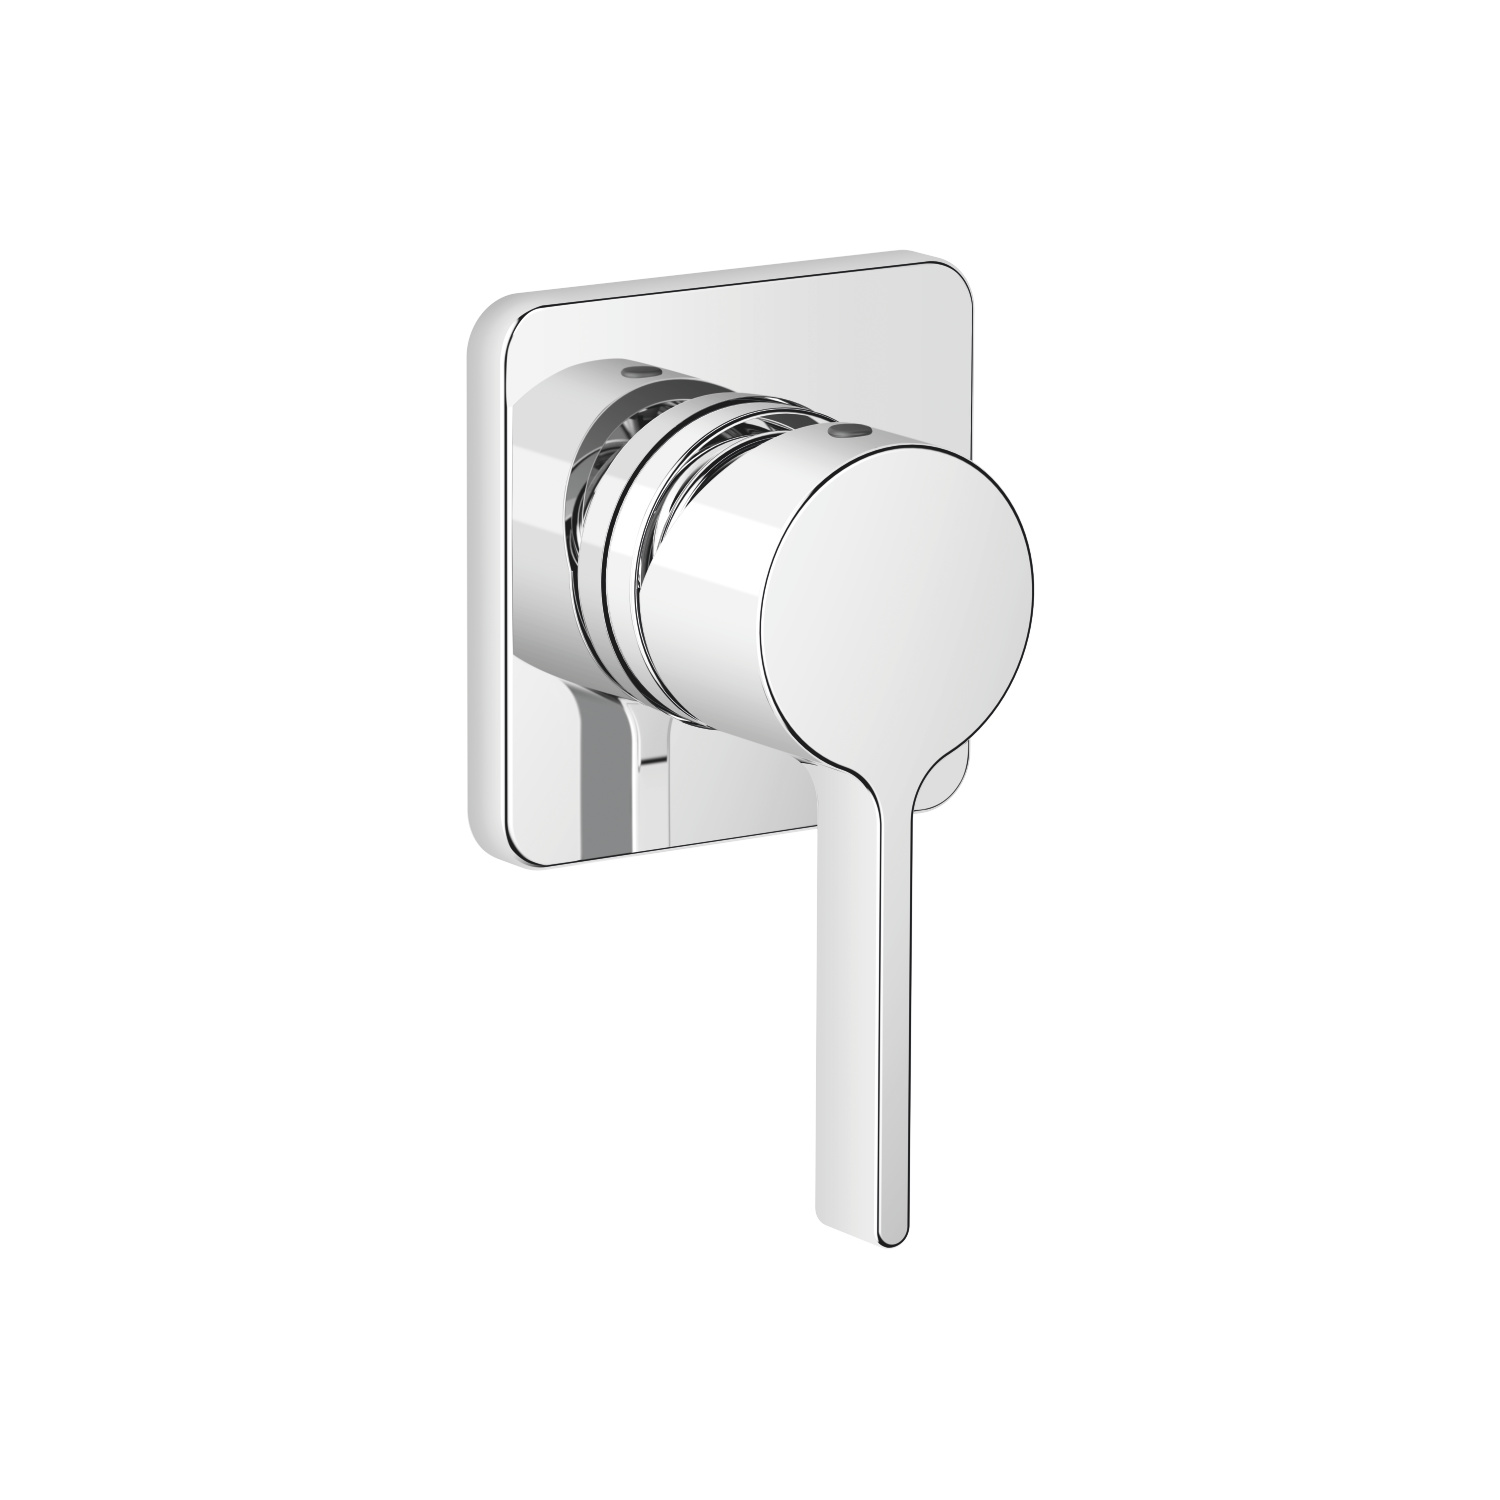 Concealed single-lever mixer with cover plate - polished chrome